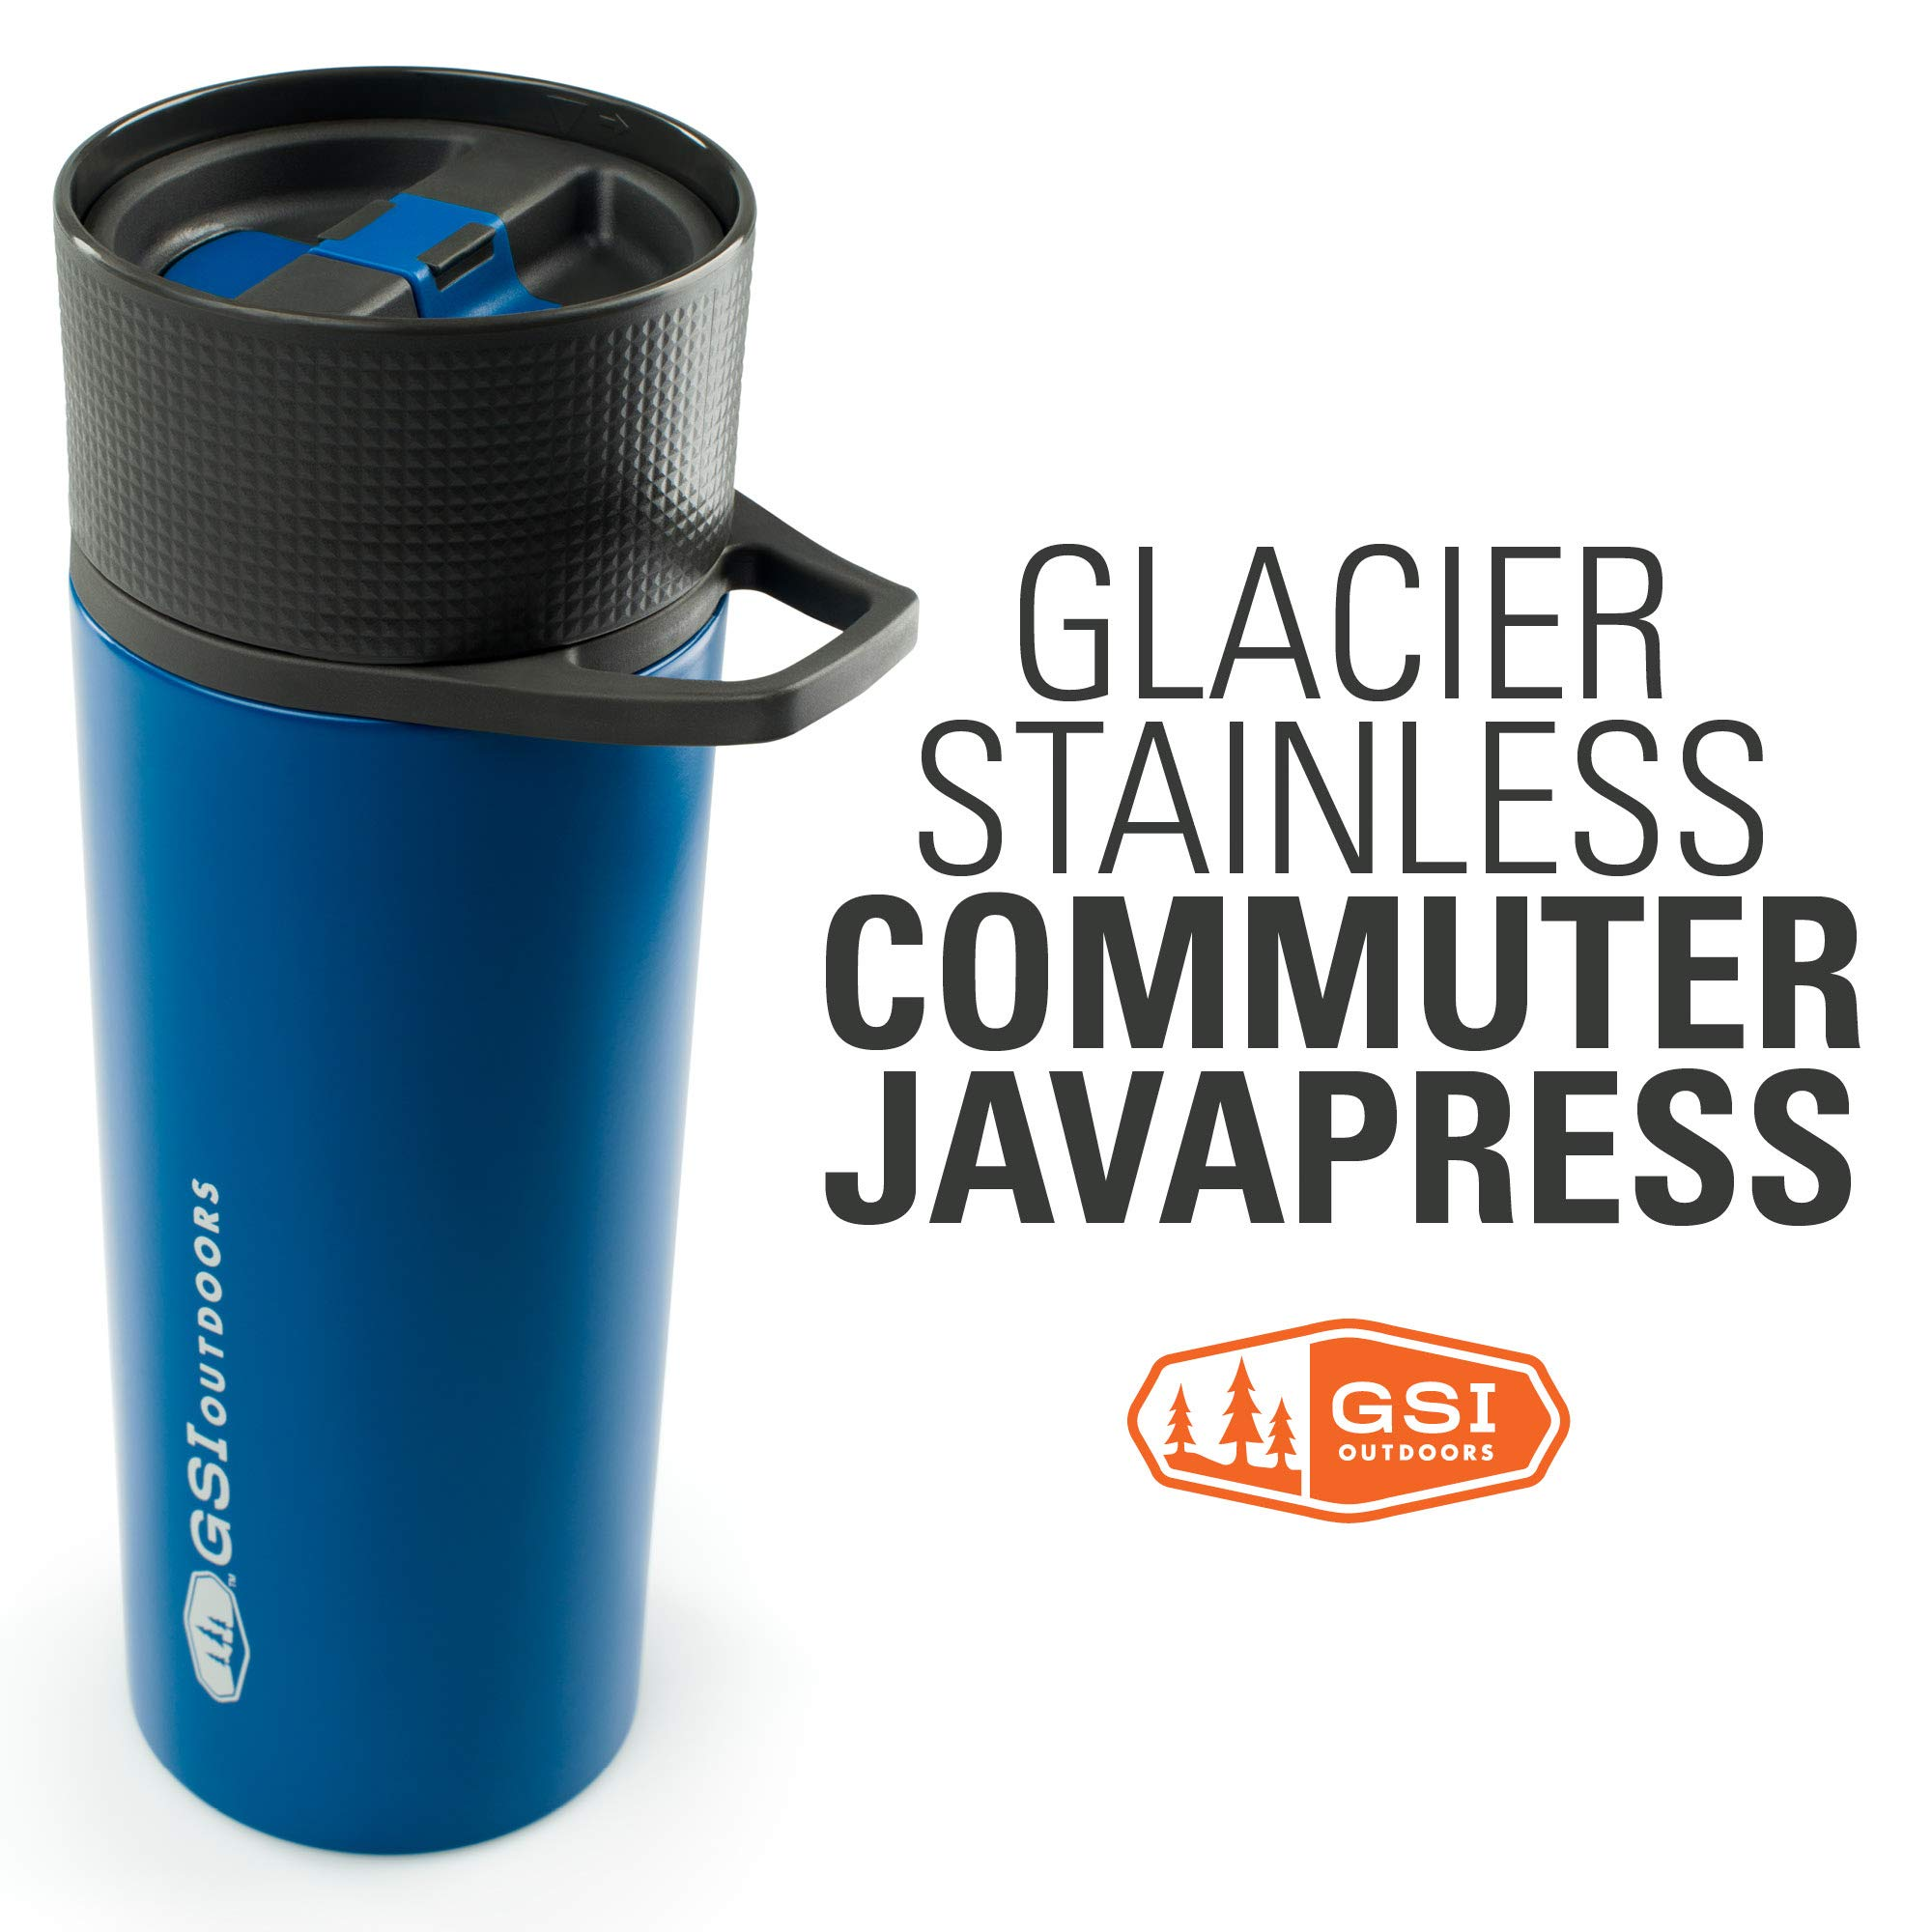 GSI Outdoors - Glacier Stainless Commuter JavaPress, French Press Coffee Mug, Superior Backcountry Cookware Since 1985, Blue by GSI Outdoors